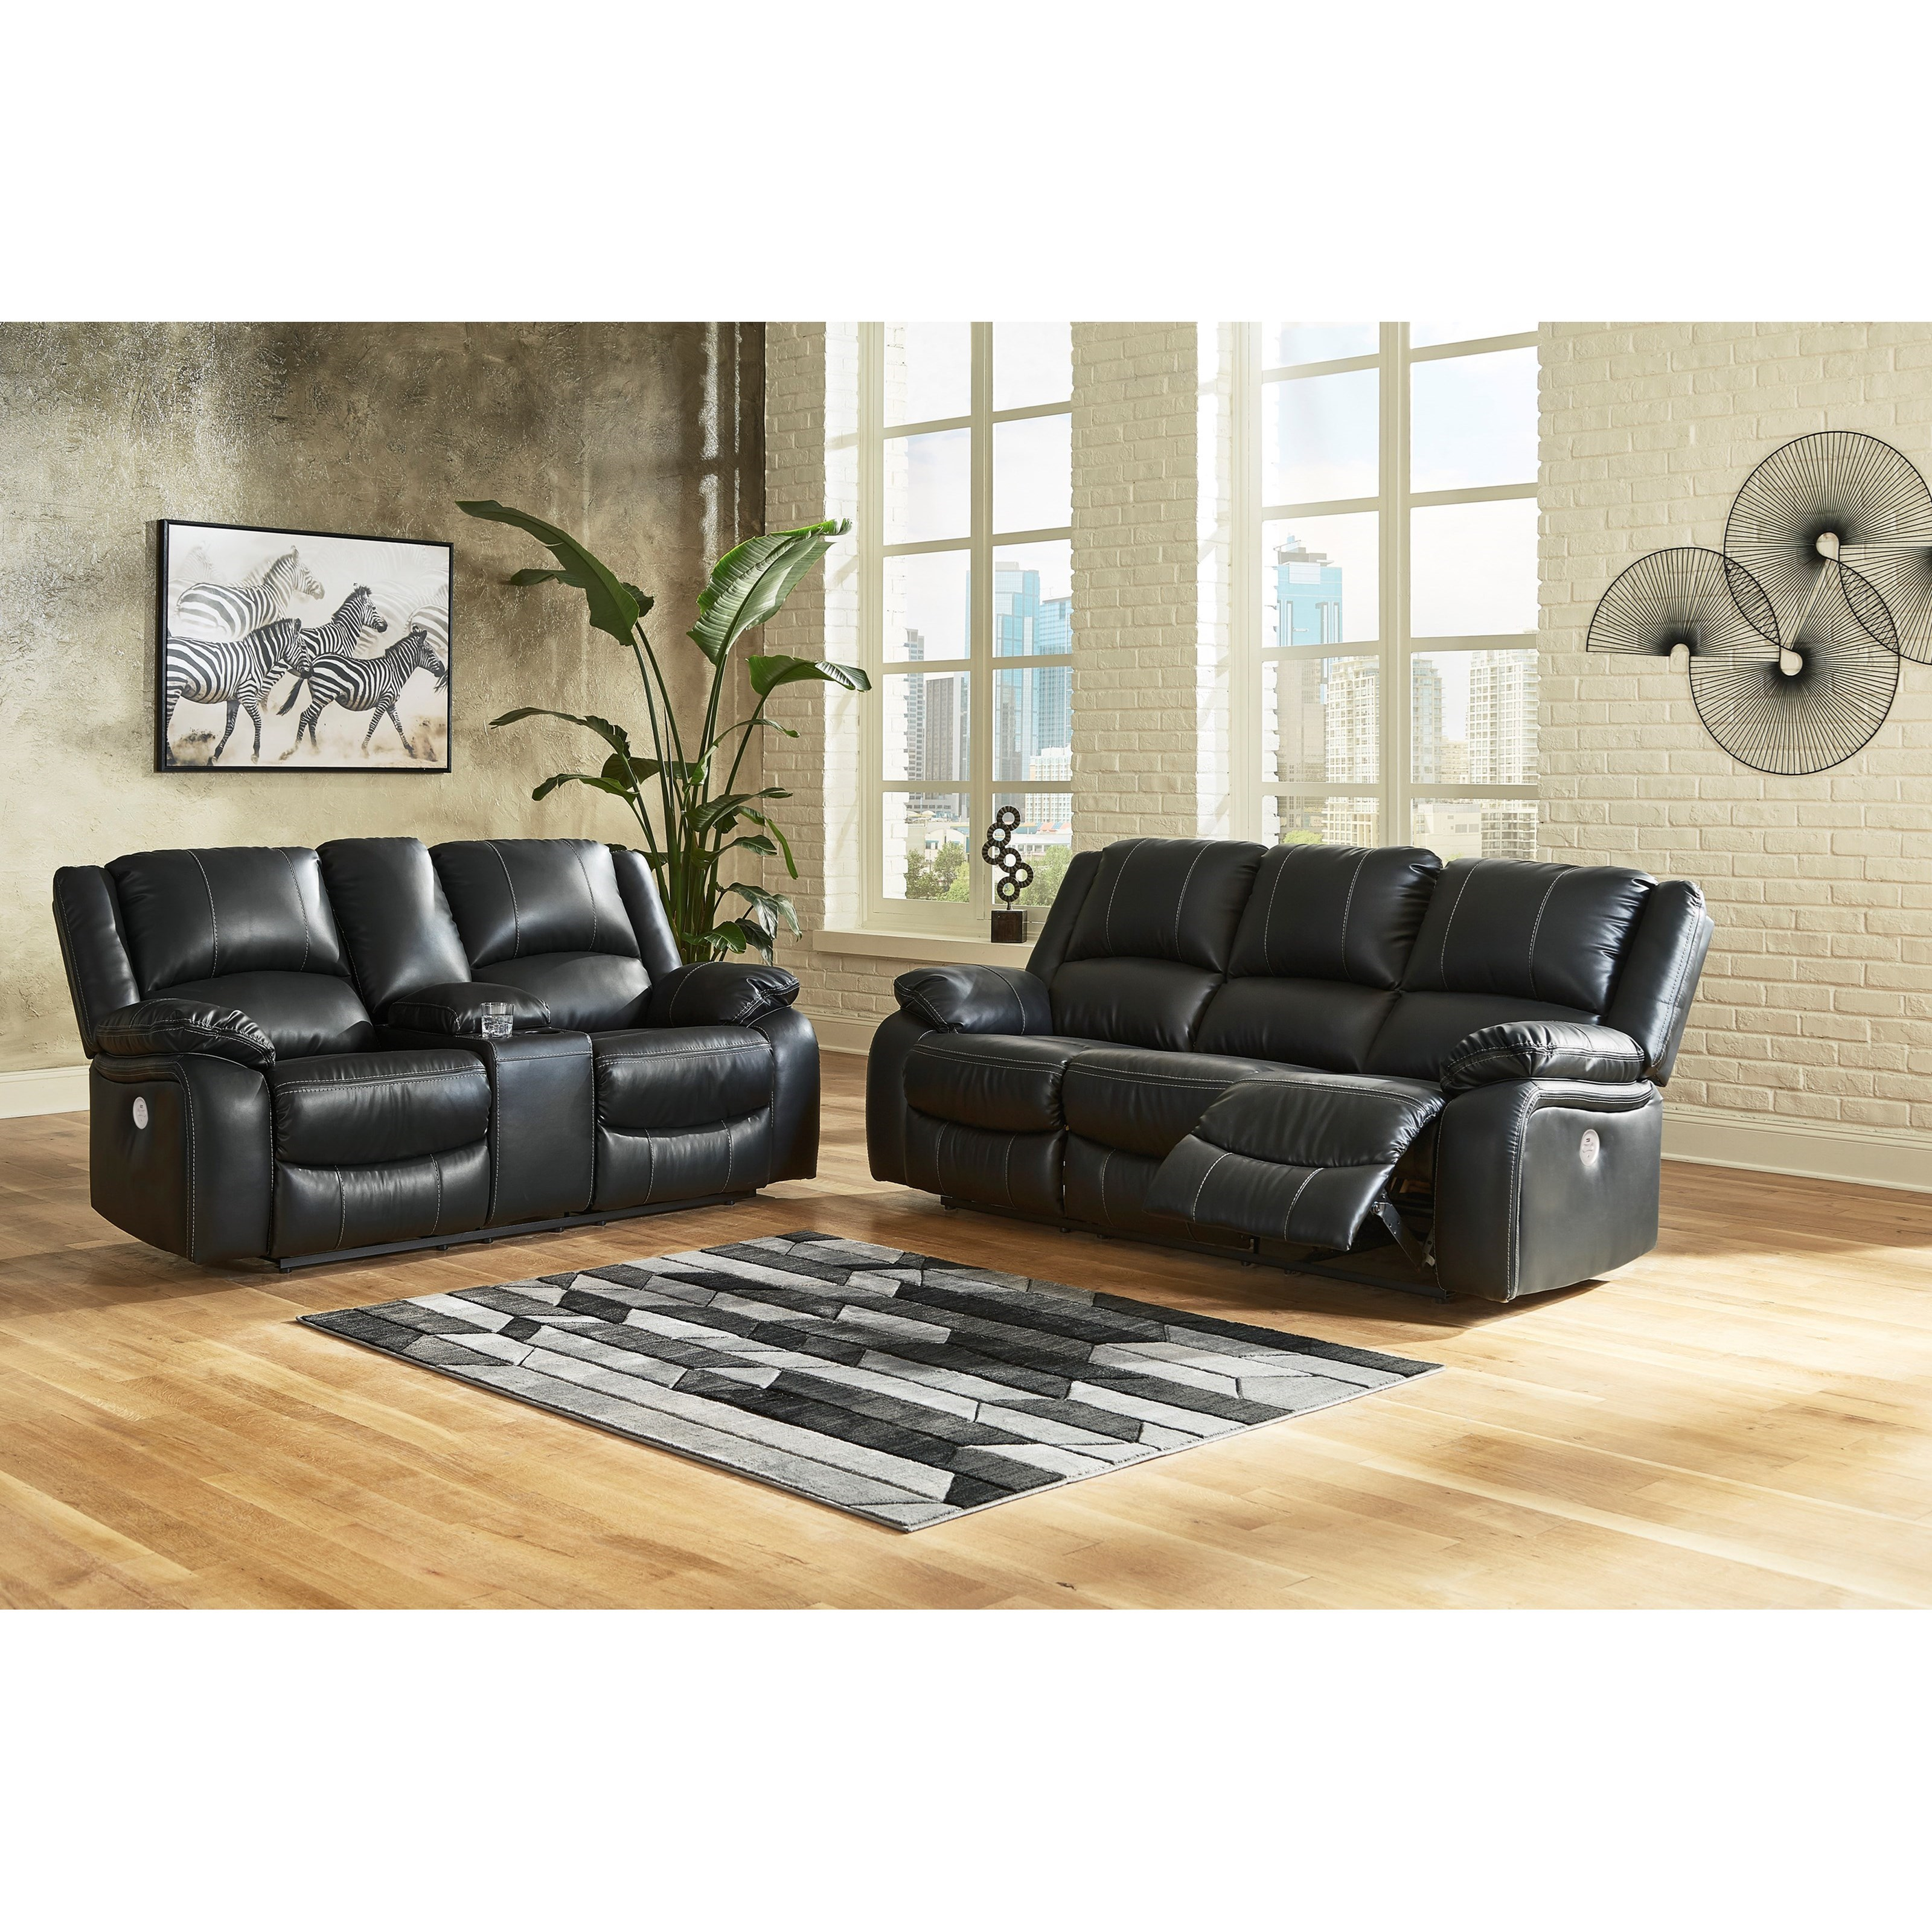 Calderwell Power Reclining Living Room Group by Ashley (Signature Design) at Johnny Janosik